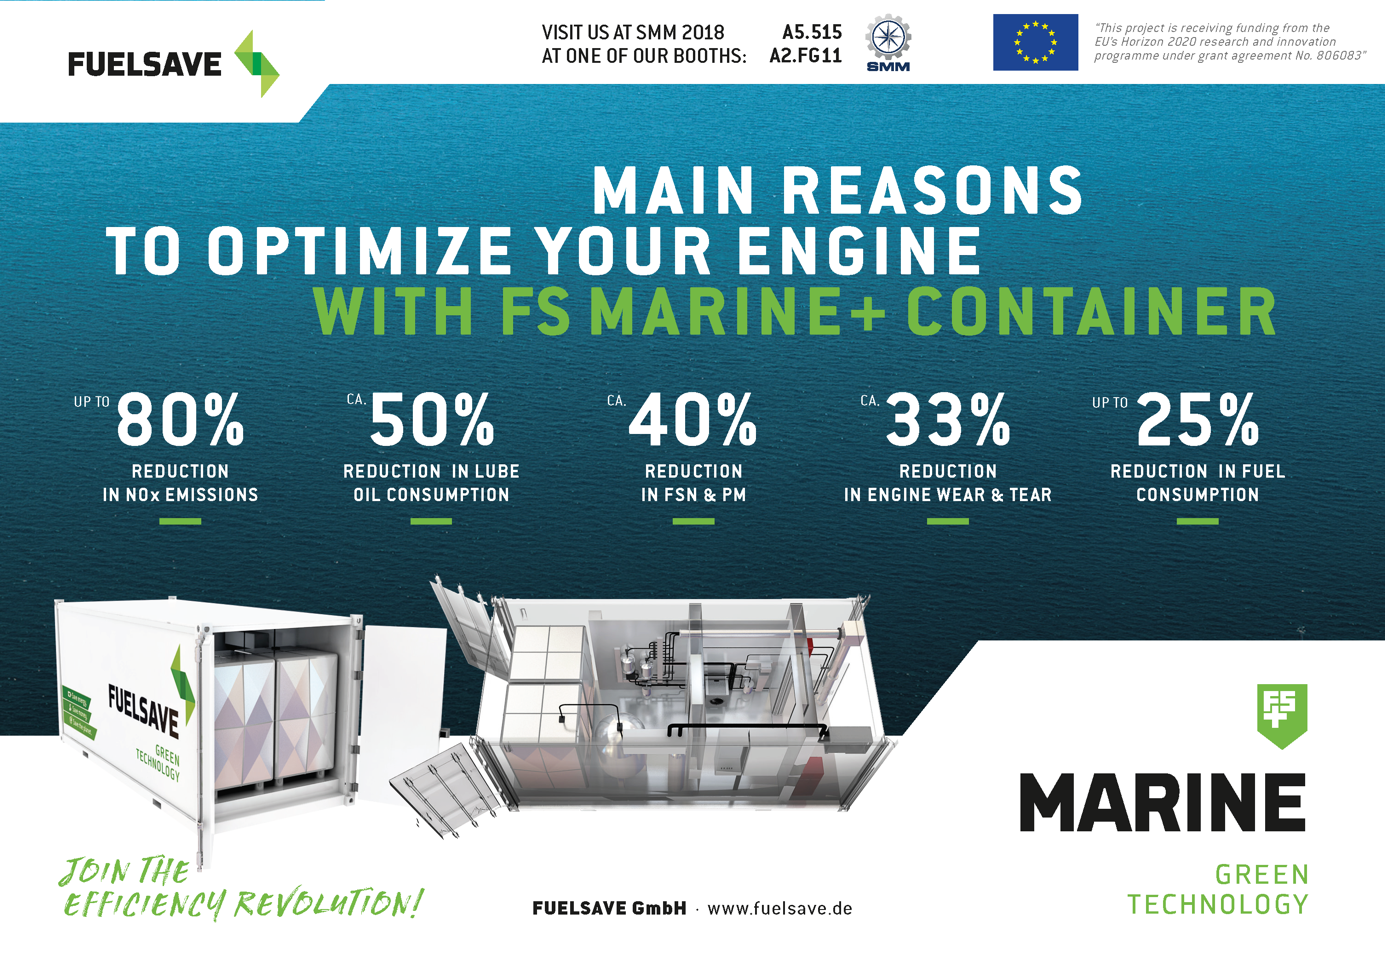 FS MARINE+ Come & Visit us at SMM 2018